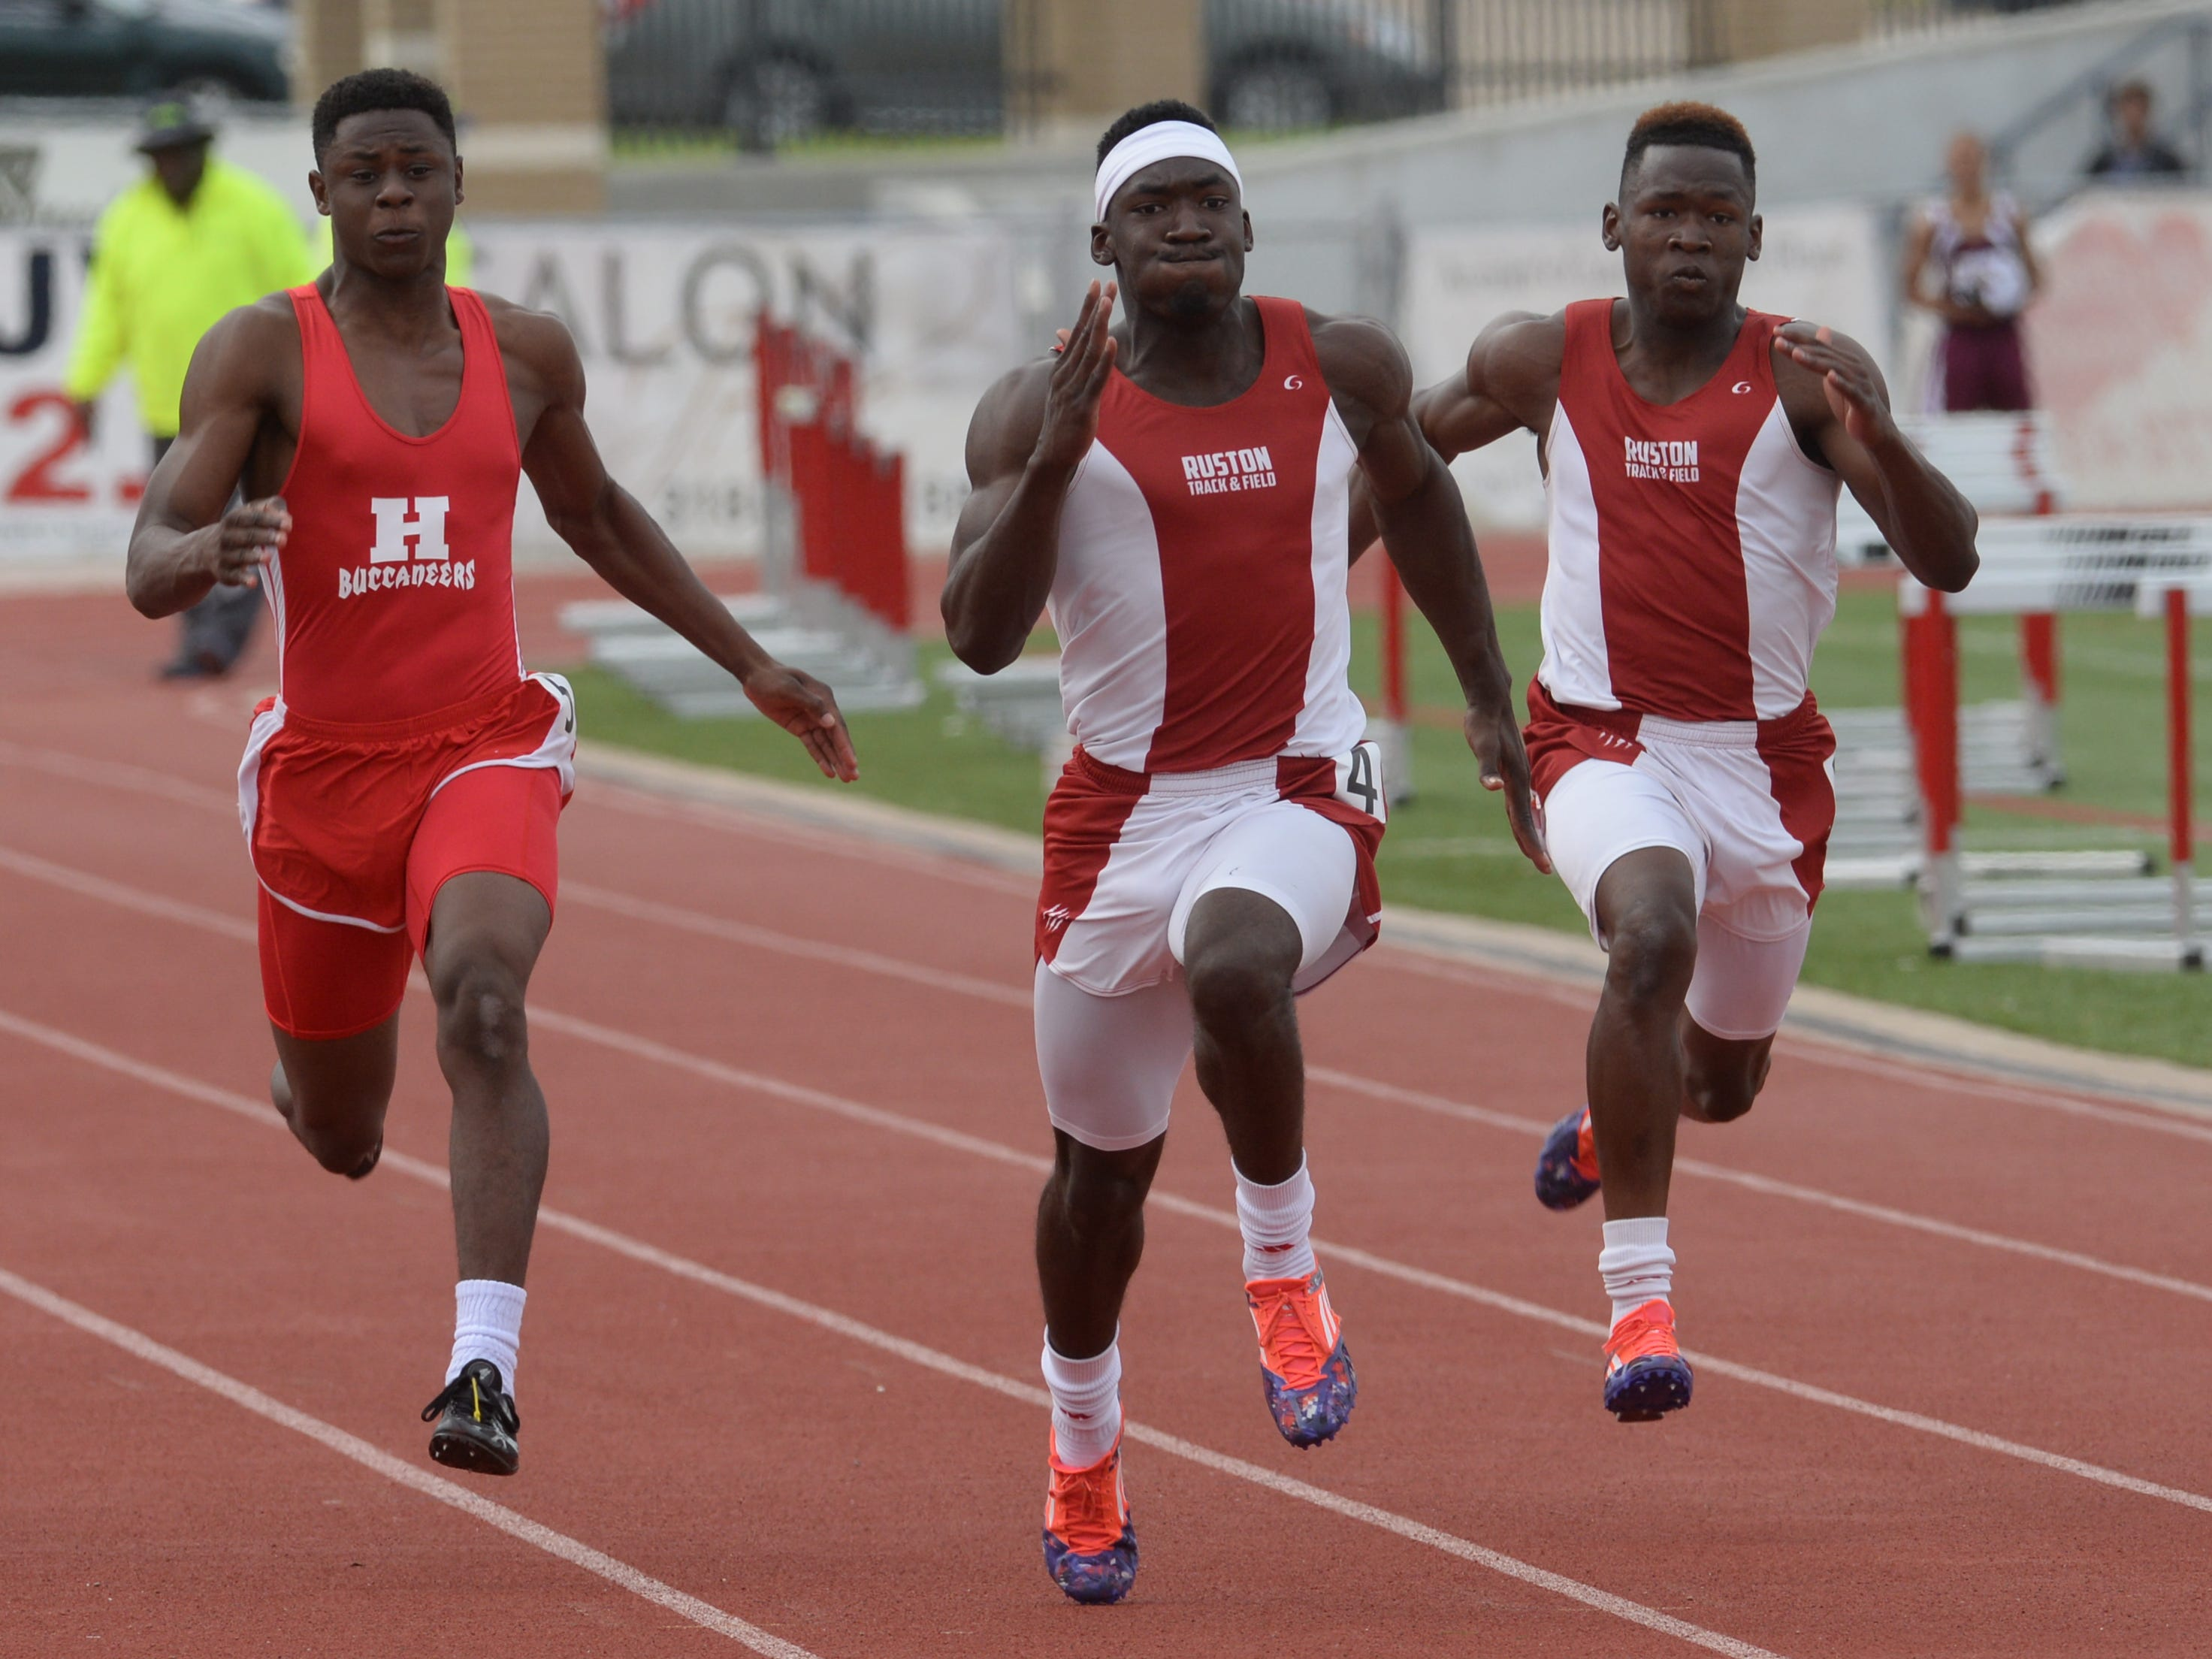 Keitaivous Walter (center) edges out Josh Lister of Haughton and his brother Kemondrick Walter in the 100m dash.